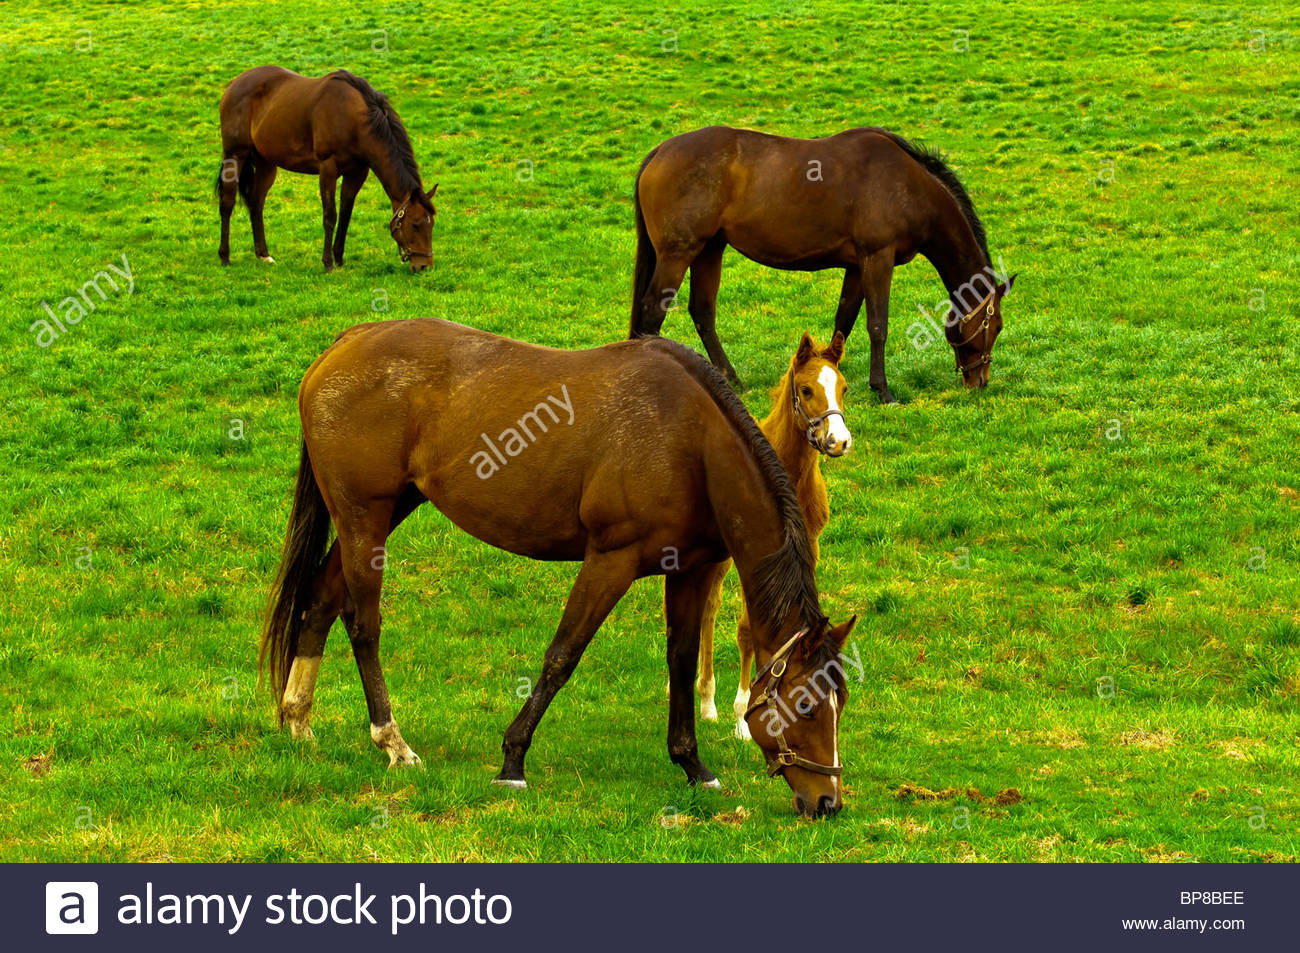 Thoroughbred horses and foals, Woodford Thoroughbreds, Versailles (near Lexington), Kentucky USA, - Stock Image